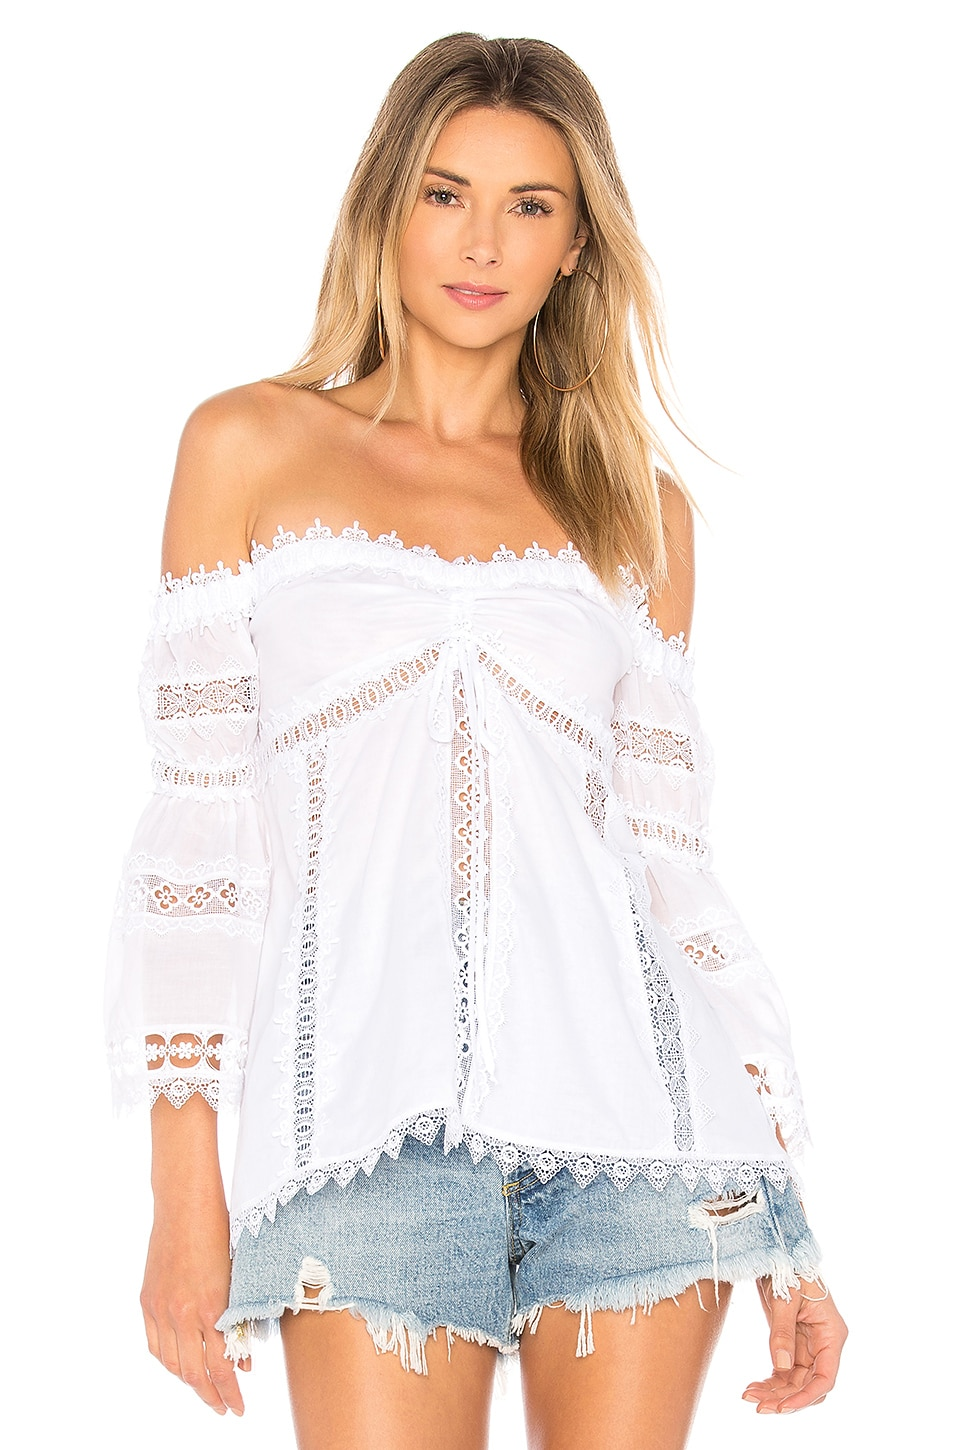 Charo Ruiz Ibiza Maya Blouse in White